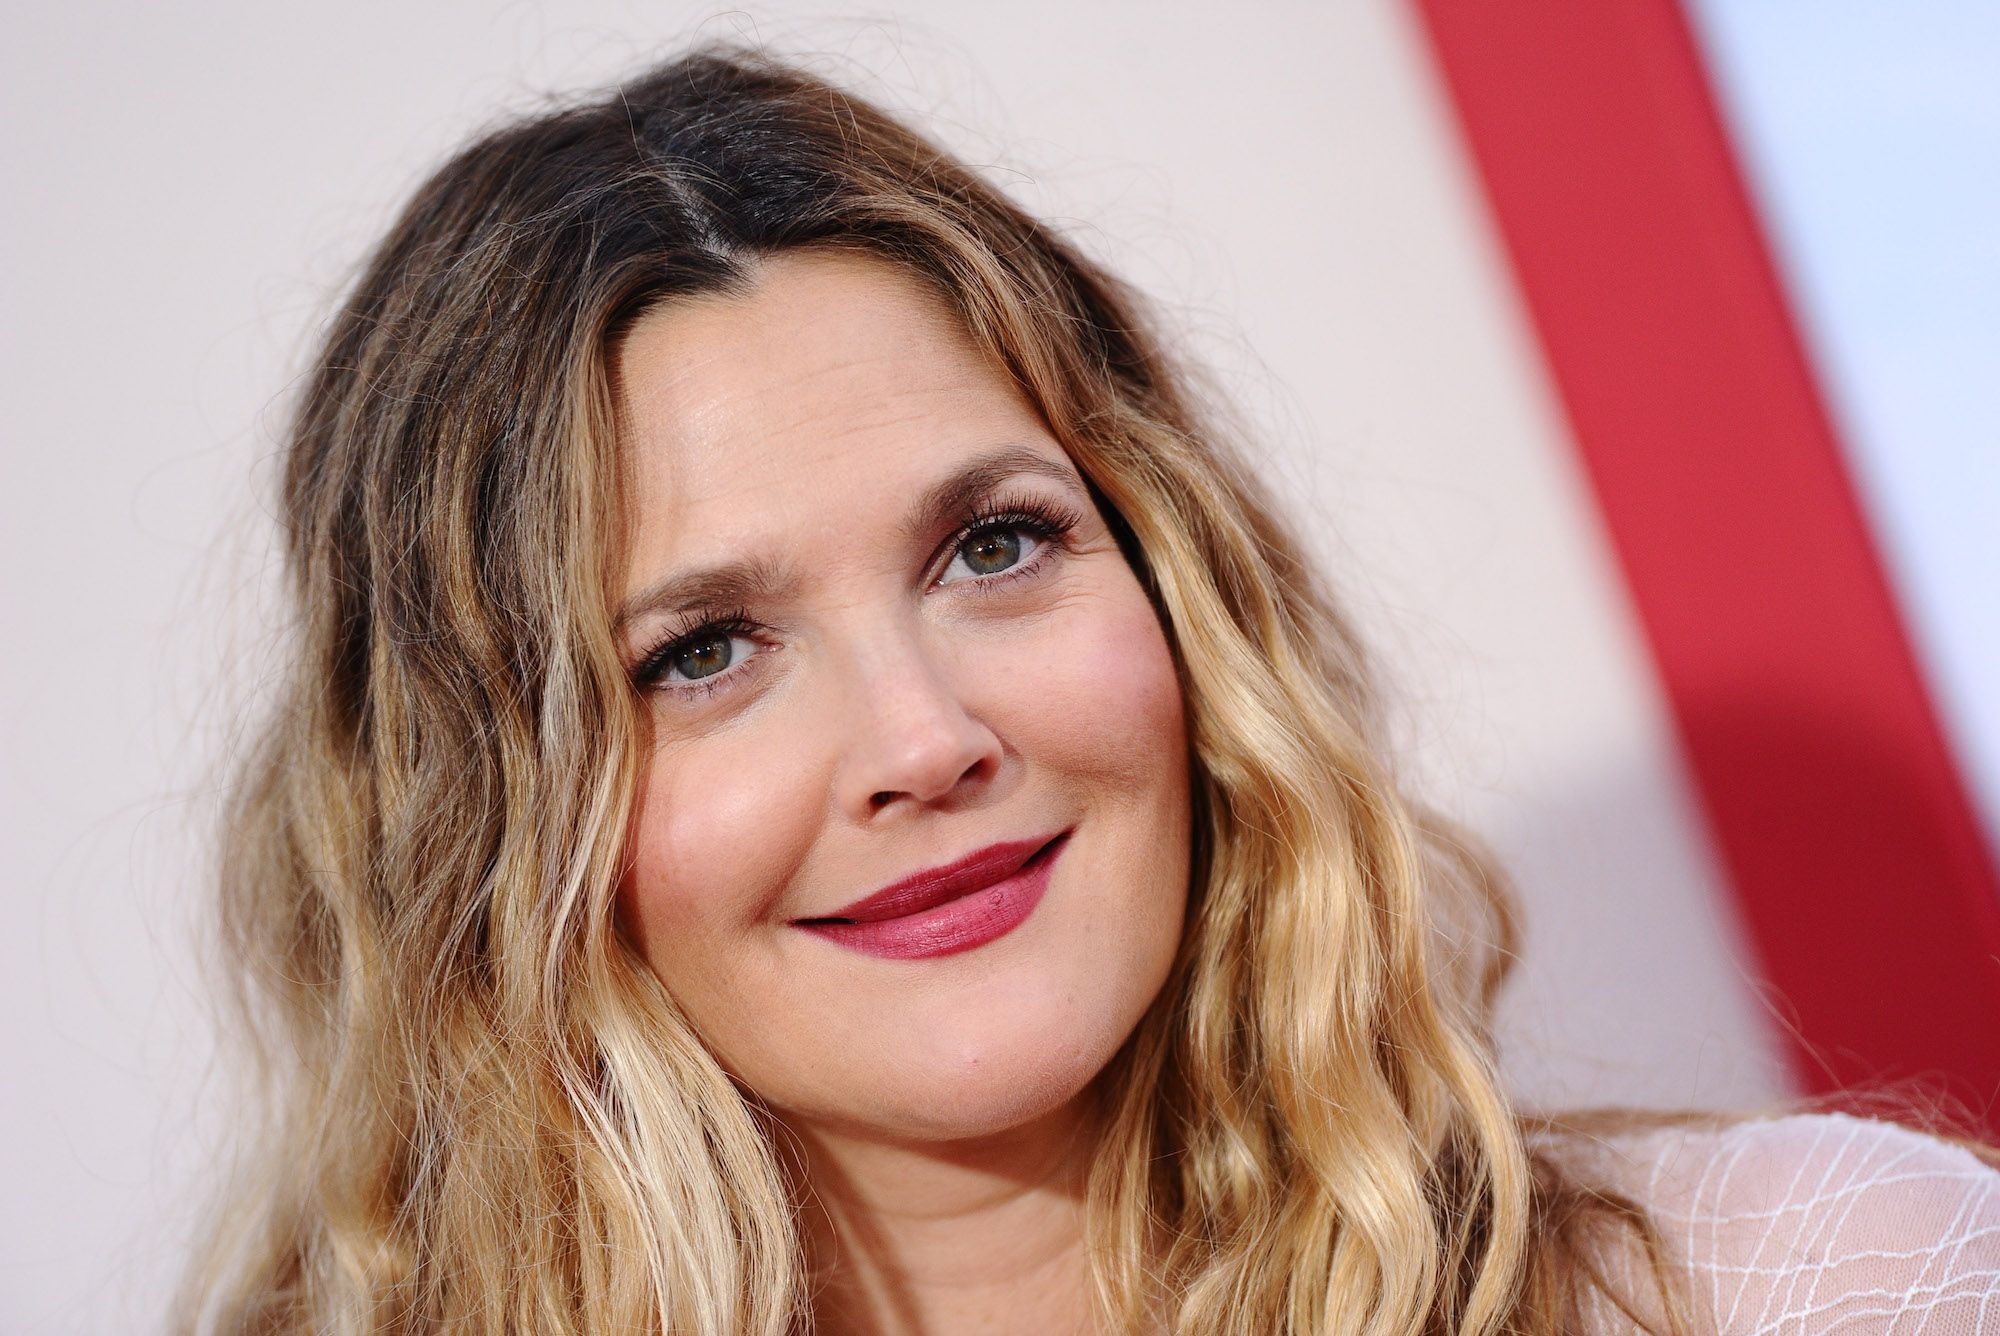 Does Drew Barrymore's New Talk Show Mean Another CBS Program Is Getting Canceled?